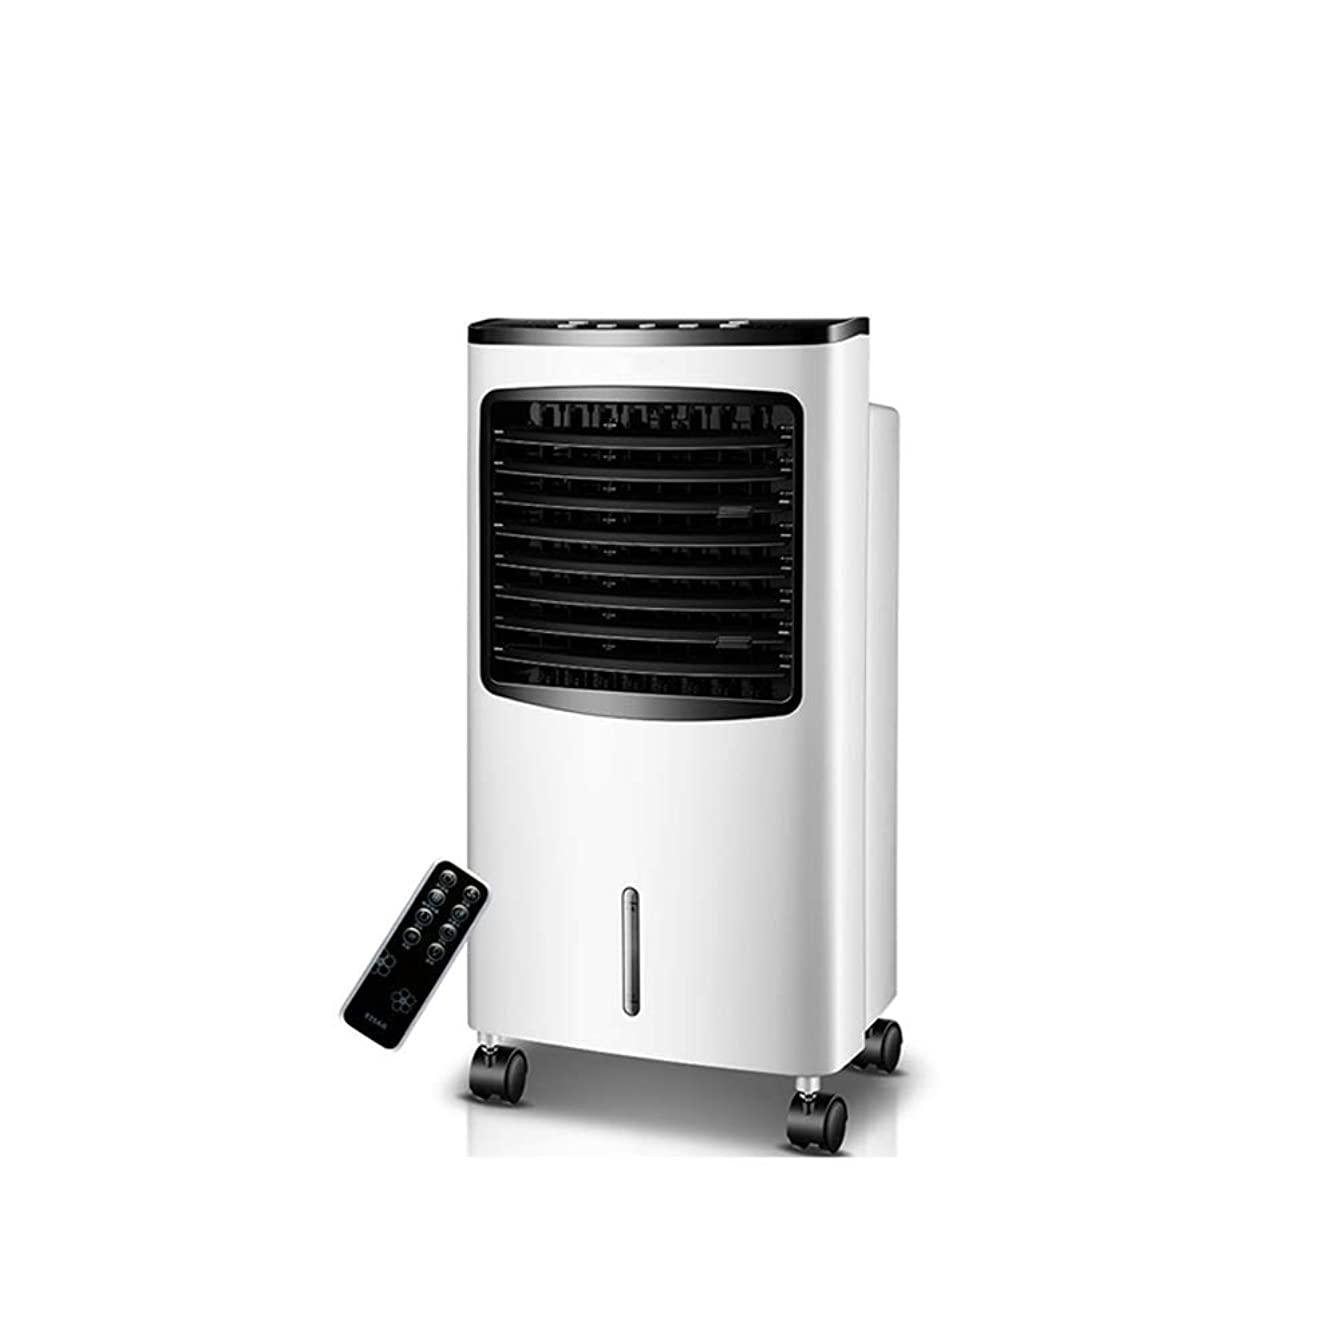 Portable Evaporative Air Conditioner Tower Cold Air Cooler Fan Mobile Air Conditioning Remote Control Timing Low Noise Refrigeration Humidification